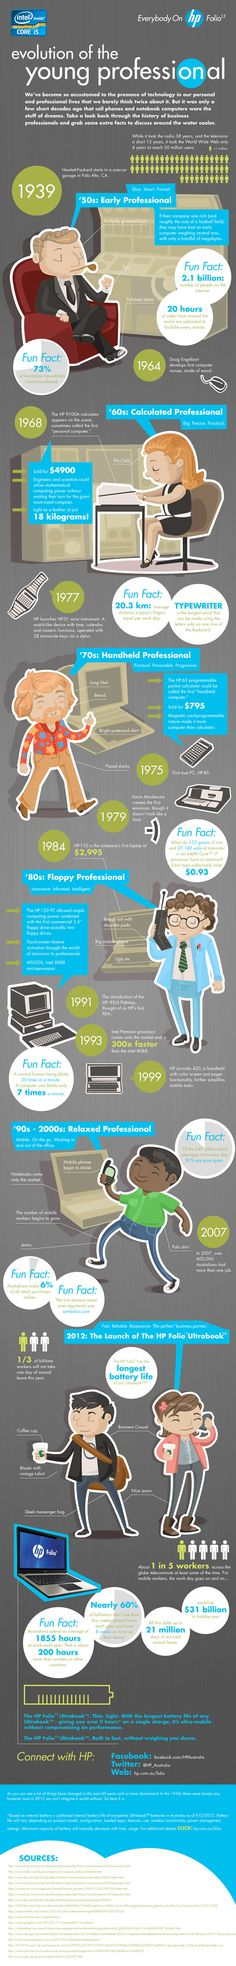 Evolution of the young professional [infographic]